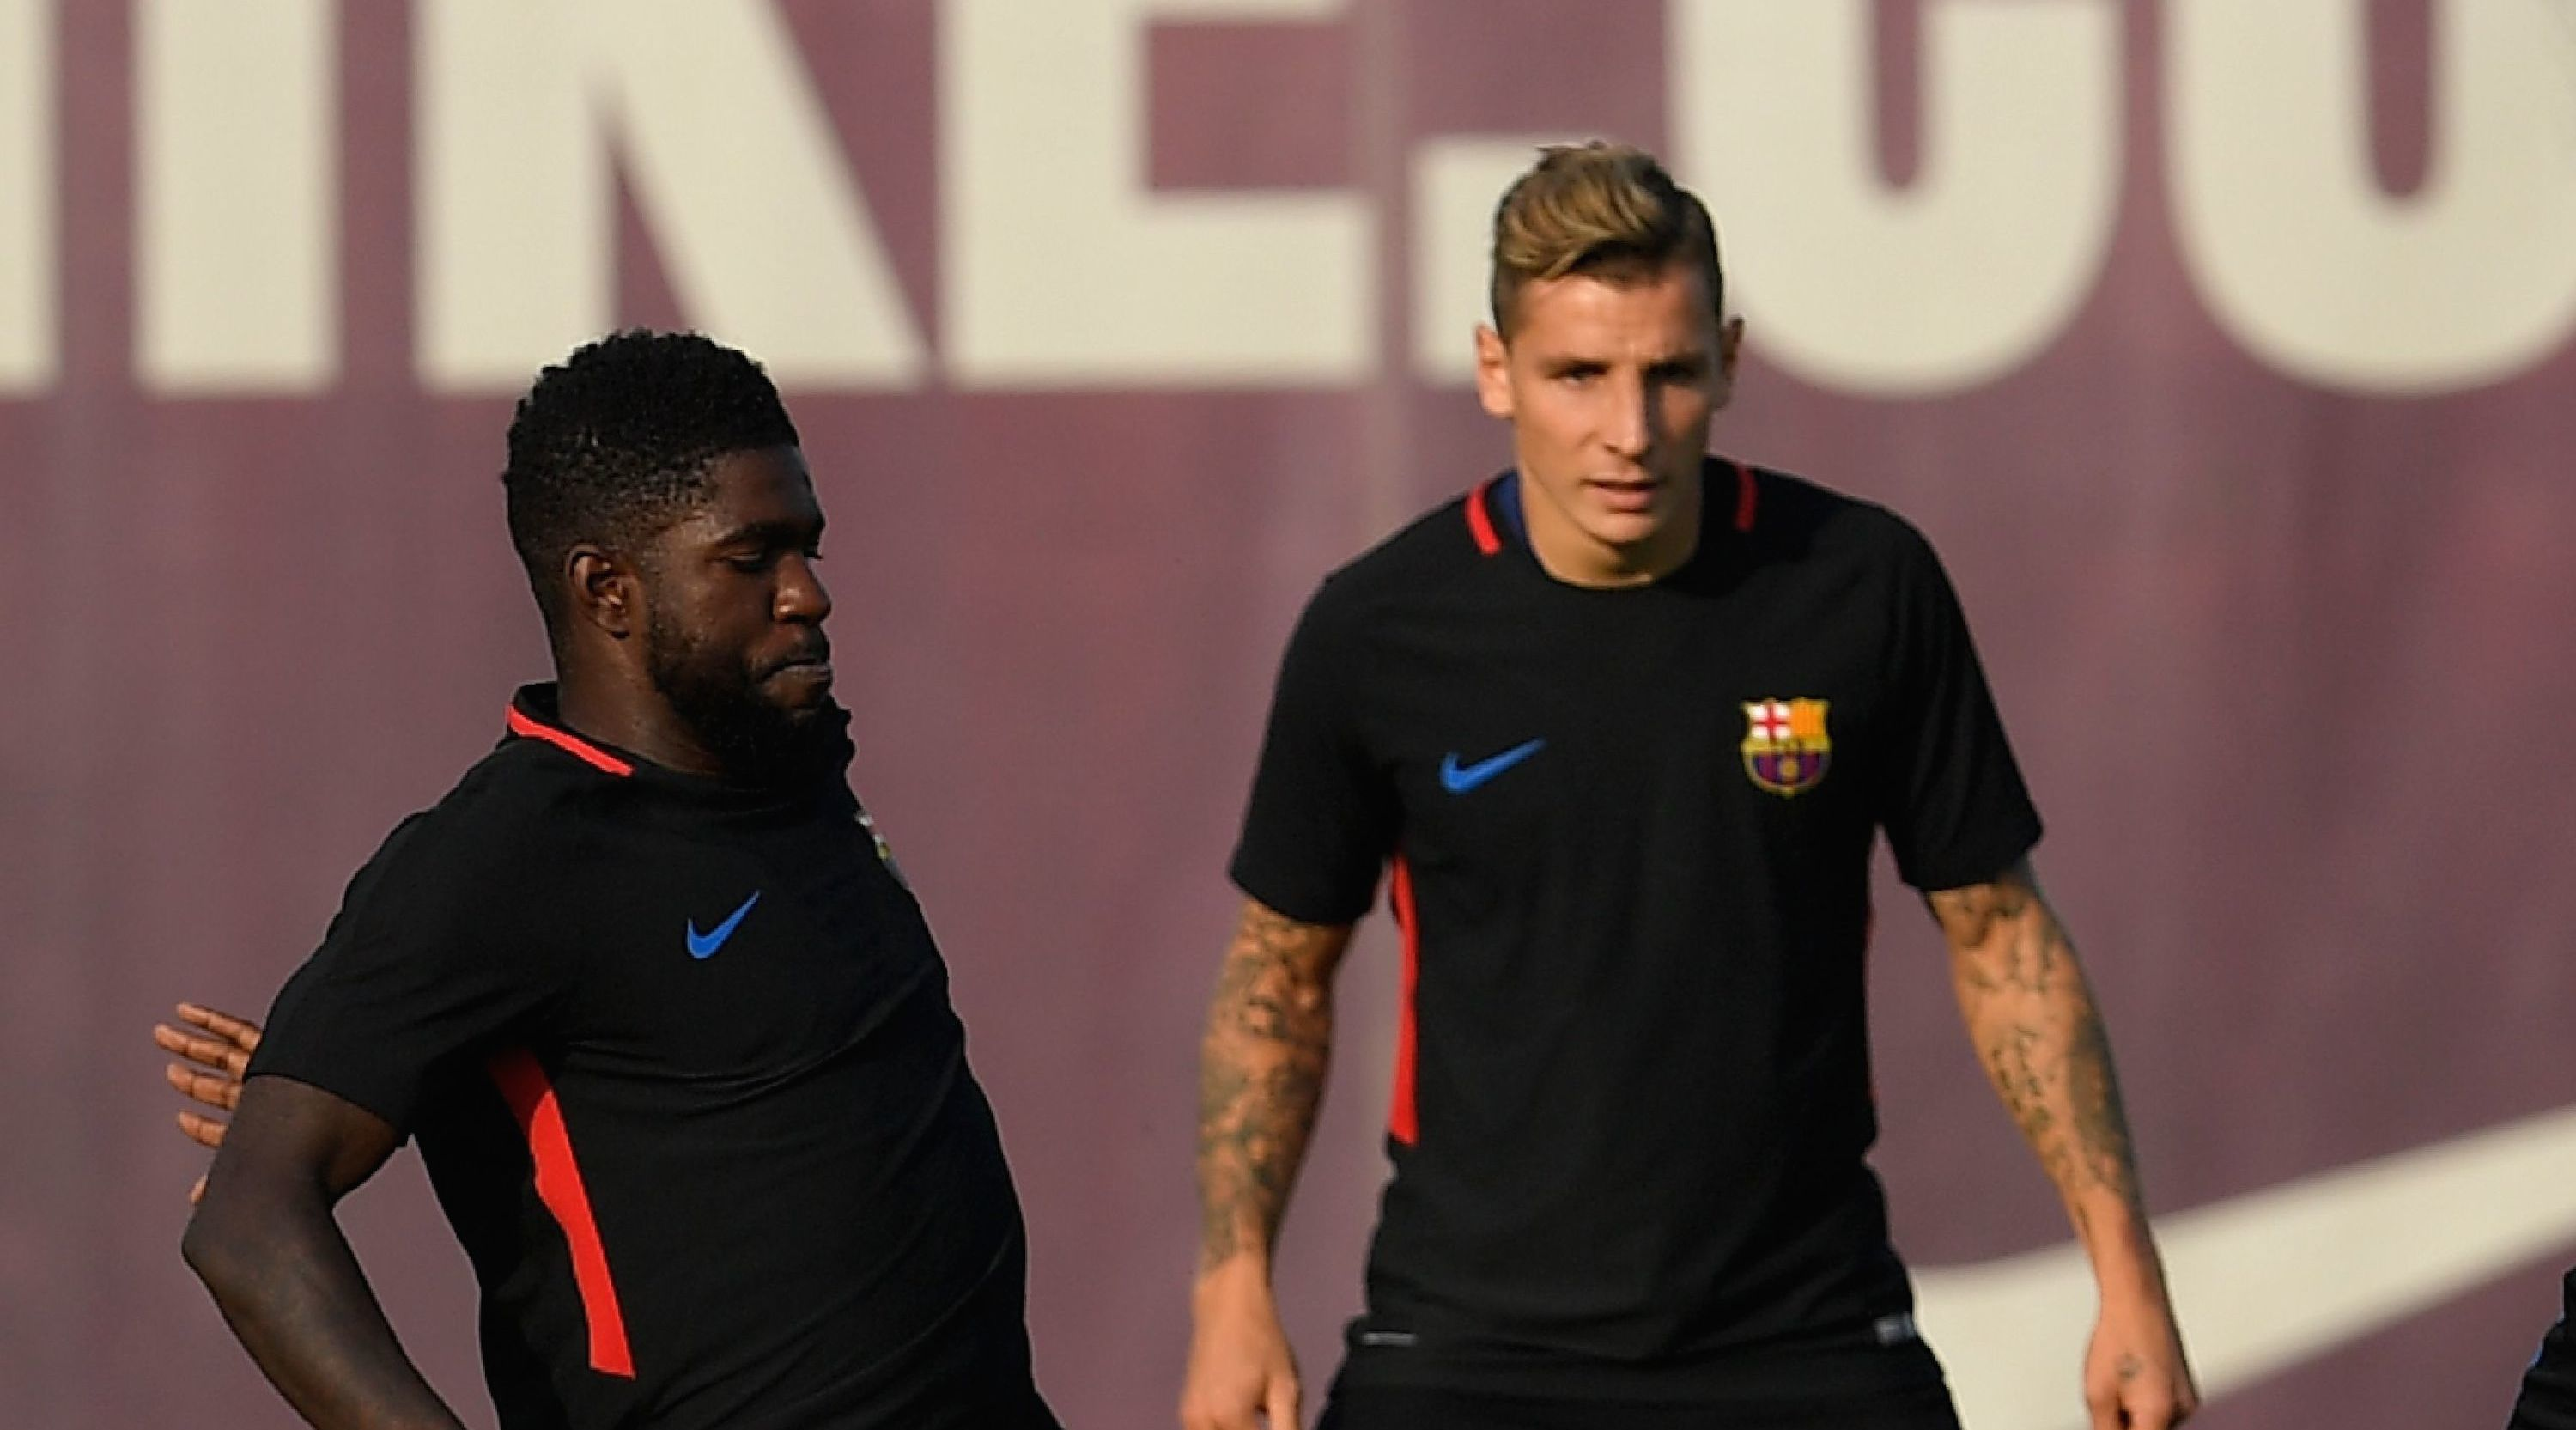 (FromL) Barcelona's French defender Samuel Umtiti, Barcelona's French defender Lucas Digne, Barcelona's french forward Ousmane Dembele and Barcelona's Argentinian forward Lionel Messi play with a ball during a training session at the Sports Center FC Barcelona Joan Gamper in Sant Joan Despi, near Barcelona on September 8, 2017, on the eve of the Spanish League match FC Barcelona vs RCD Espanyol. / AFP PHOTO / LLUIS GENE (Photo credit should read LLUIS GENE/AFP/Getty Images)